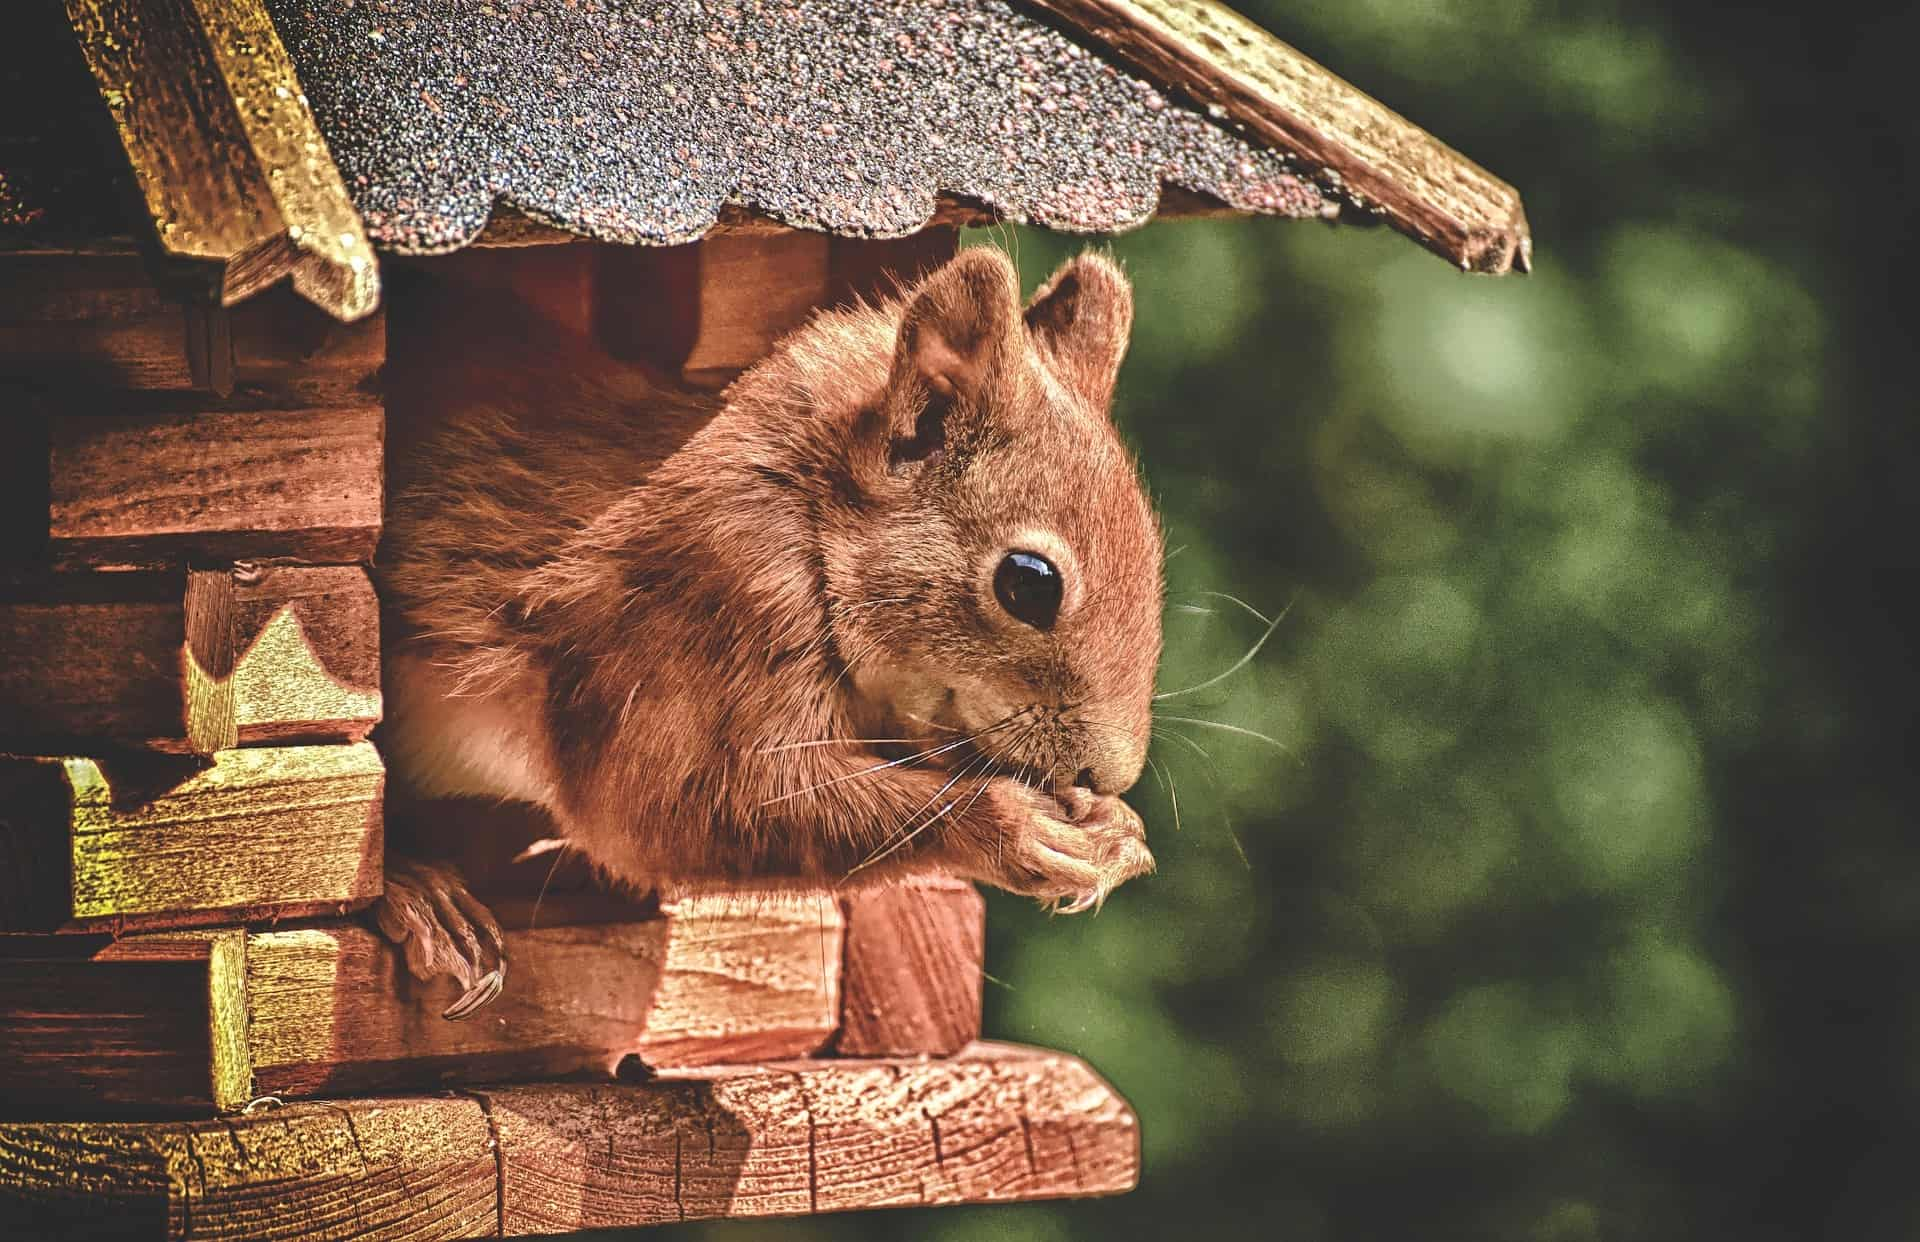 https://laroueetlaplume.fr/wp-content/uploads/2020/01/squirrel-food.jpg